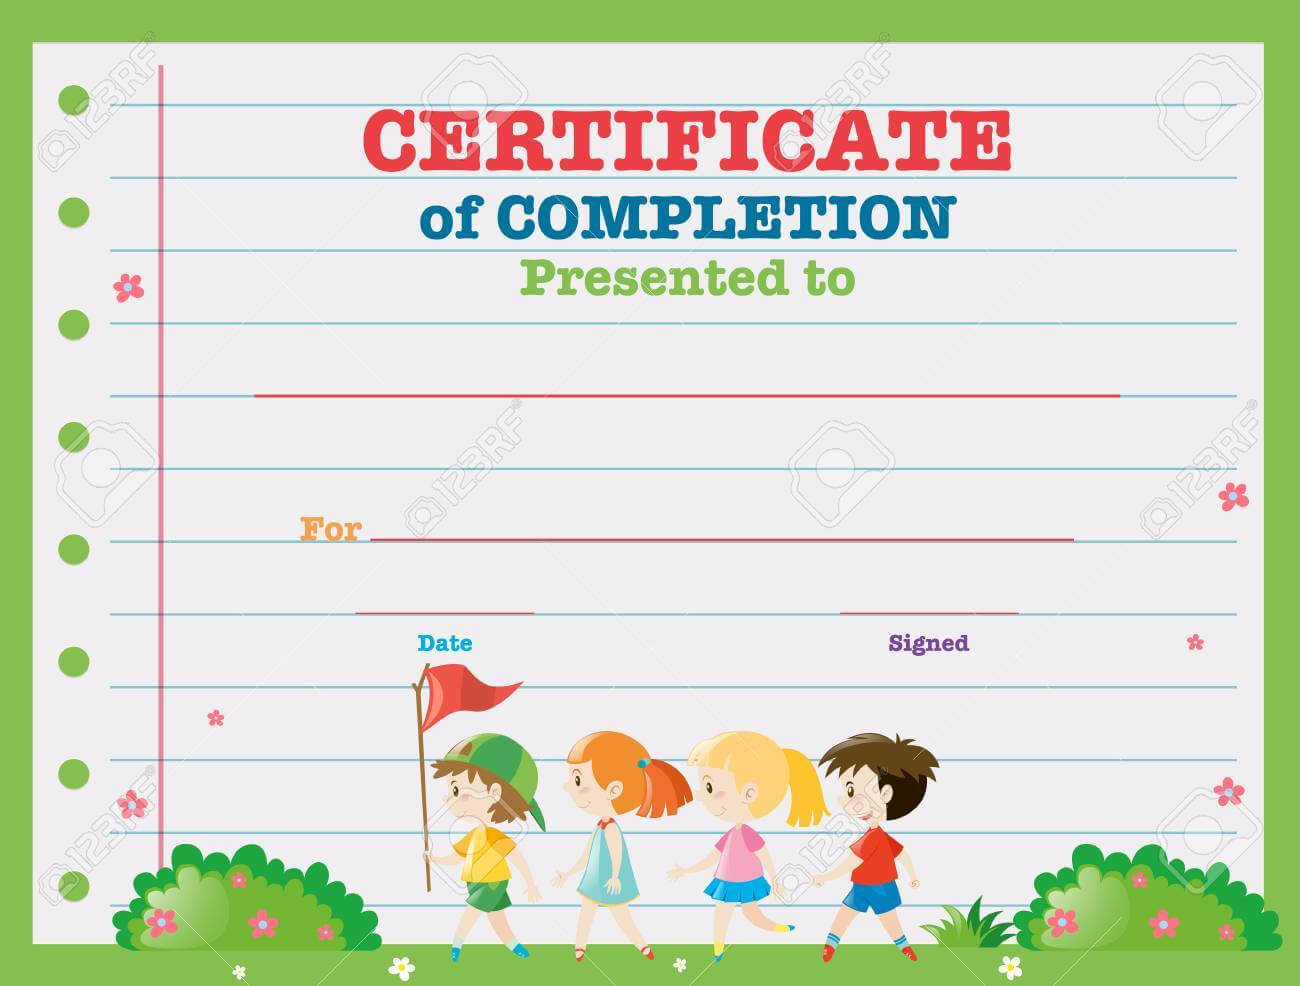 Certificate Template With Kids Walking In The Park Illustration Within Walking Certificate Templates